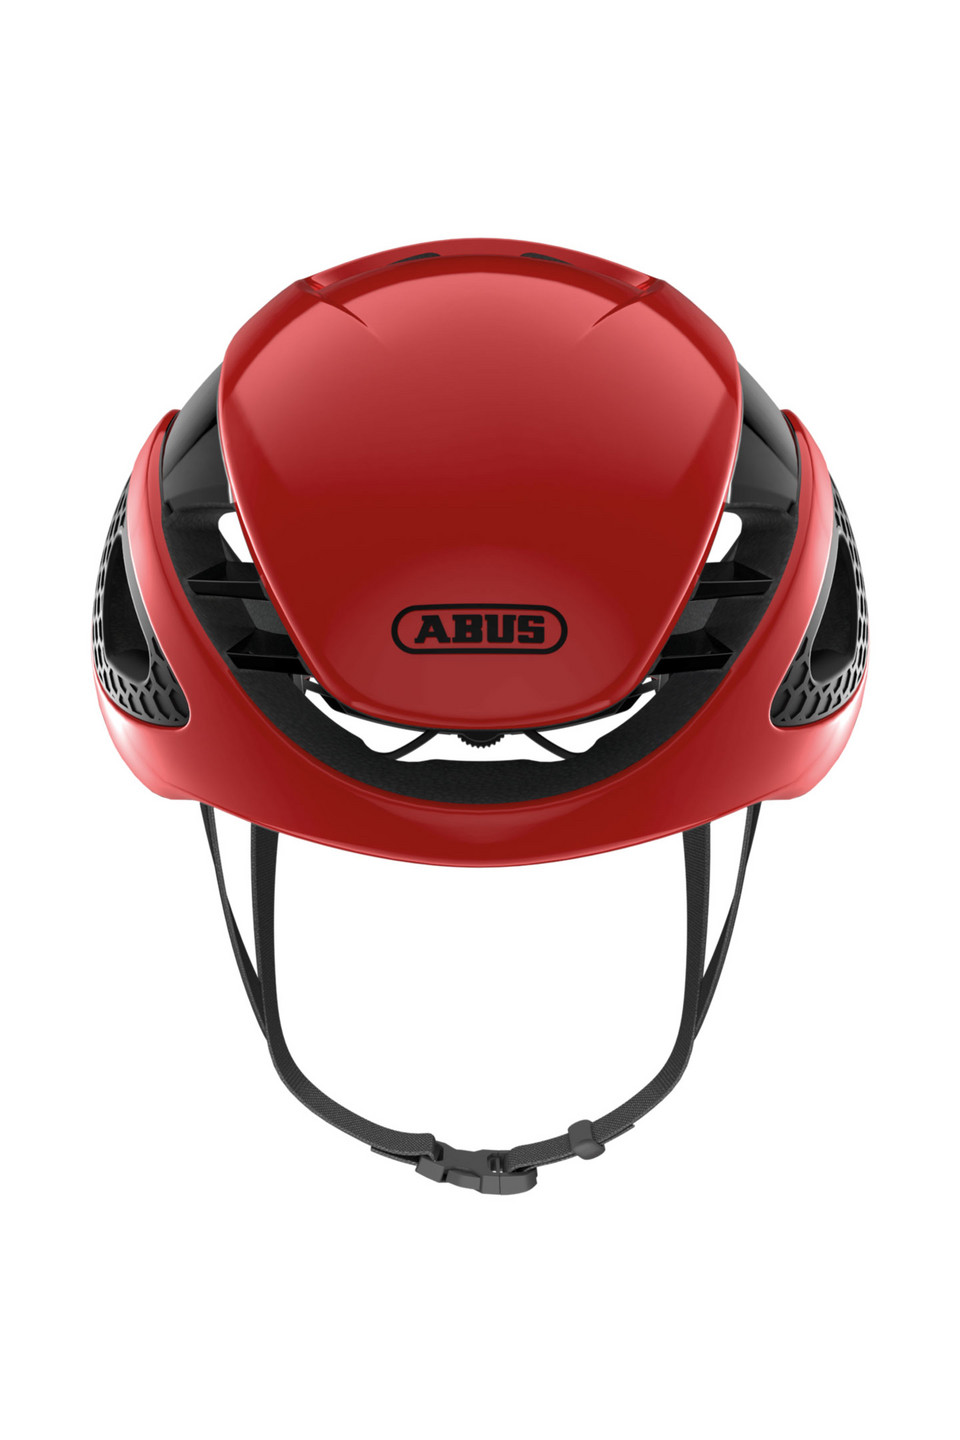 GameChanger Front ©ABUS